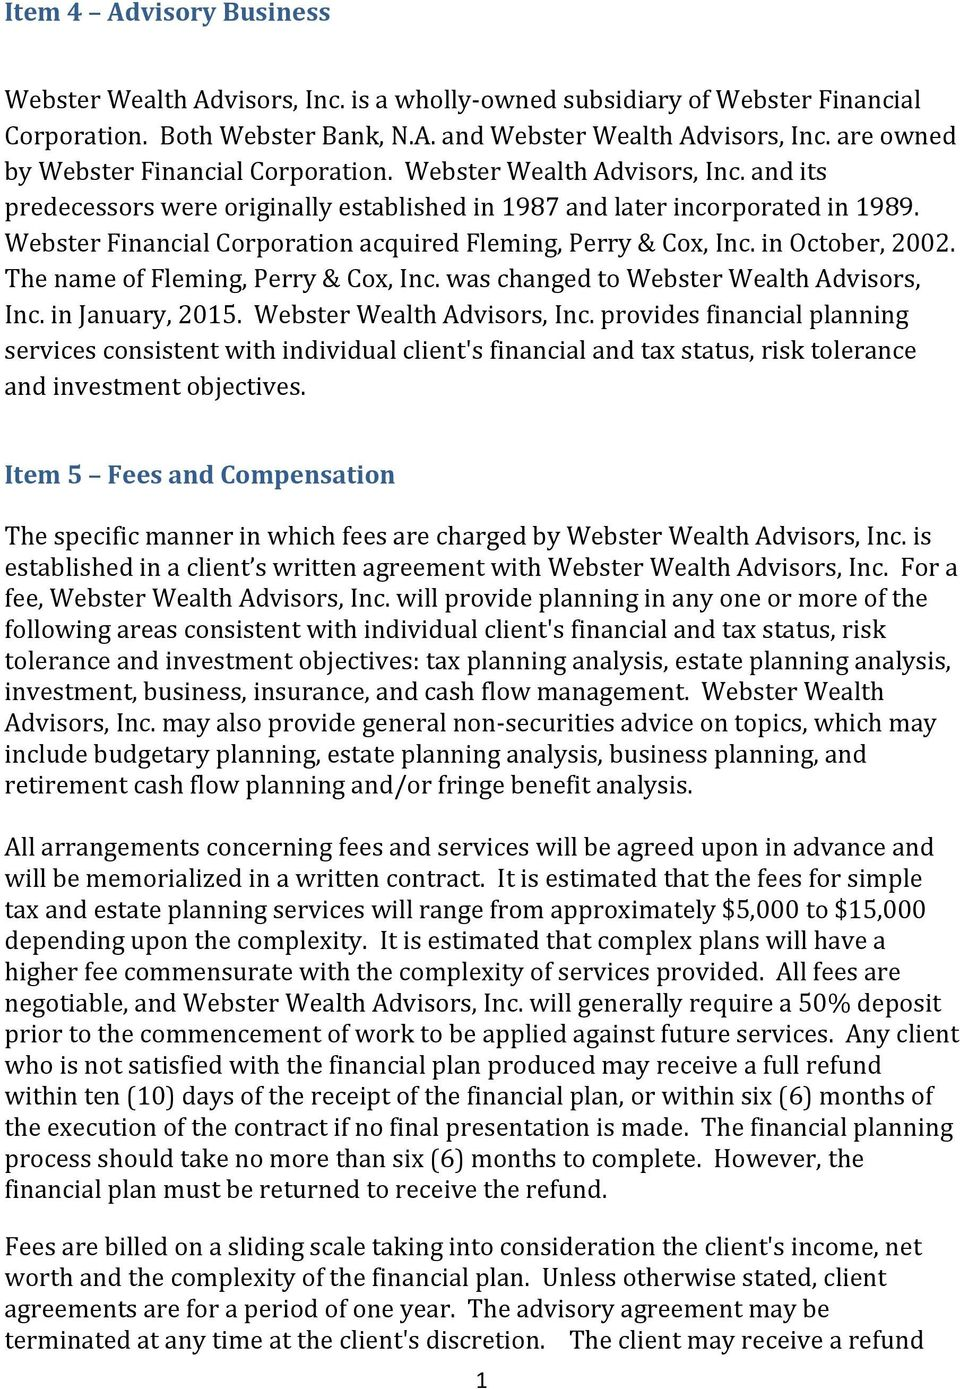 Webster Financial Corporation acquired Fleming, Perry & Cox, Inc. in October, 2002. The name of Fleming, Perry & Cox, Inc. was changed to Webster Wealth Advisors, Inc. in January, 2015.